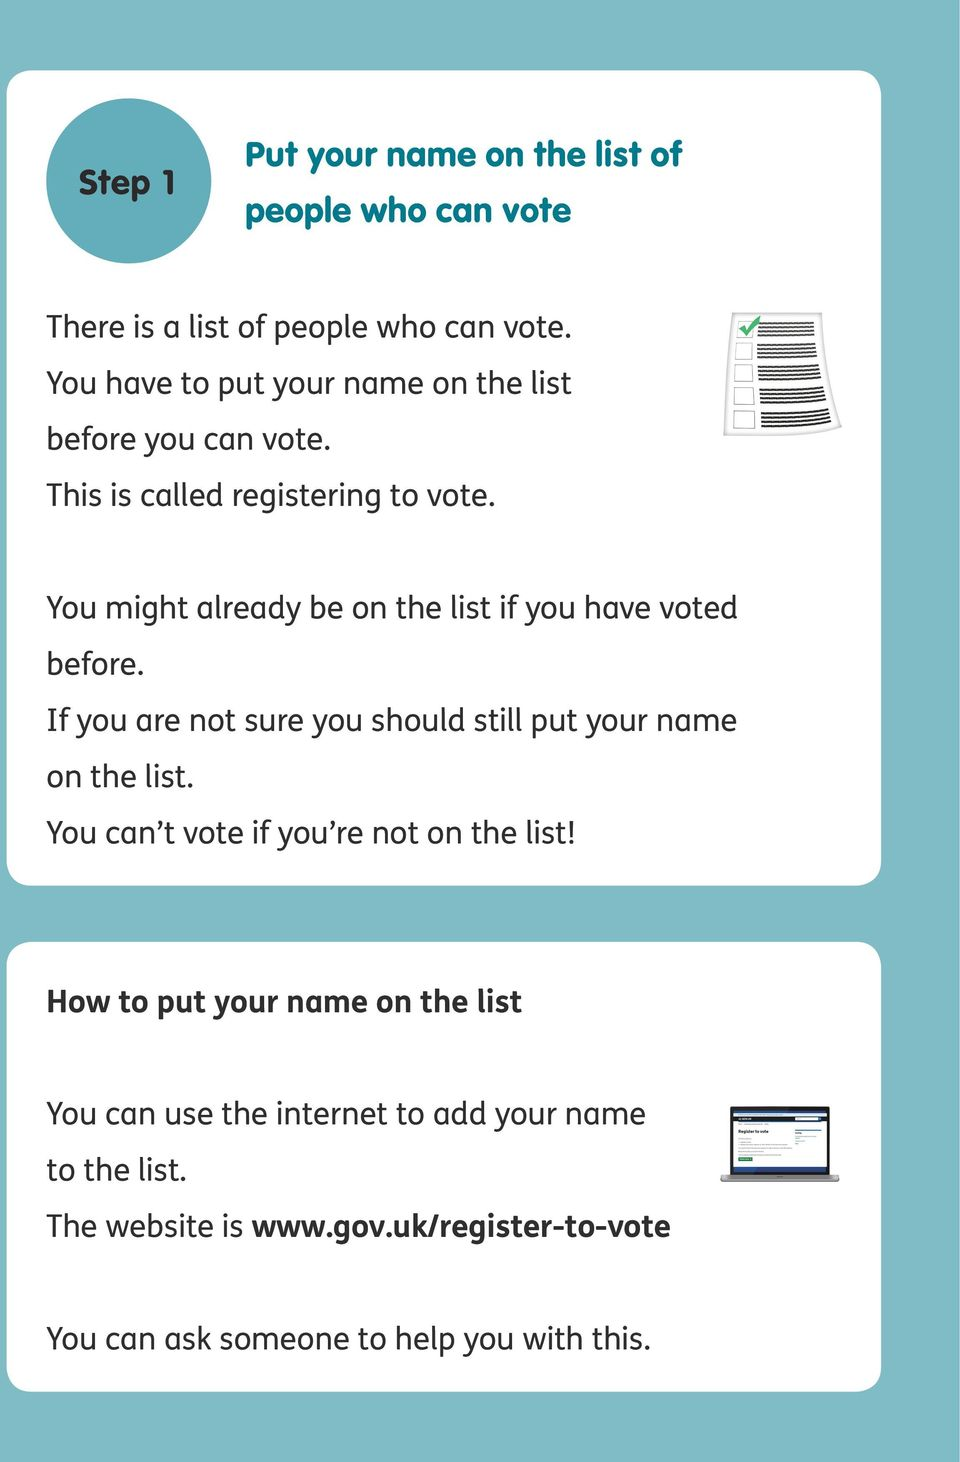 You might already be on the list if you have voted before. If you are not sure you should still put your name on the list.